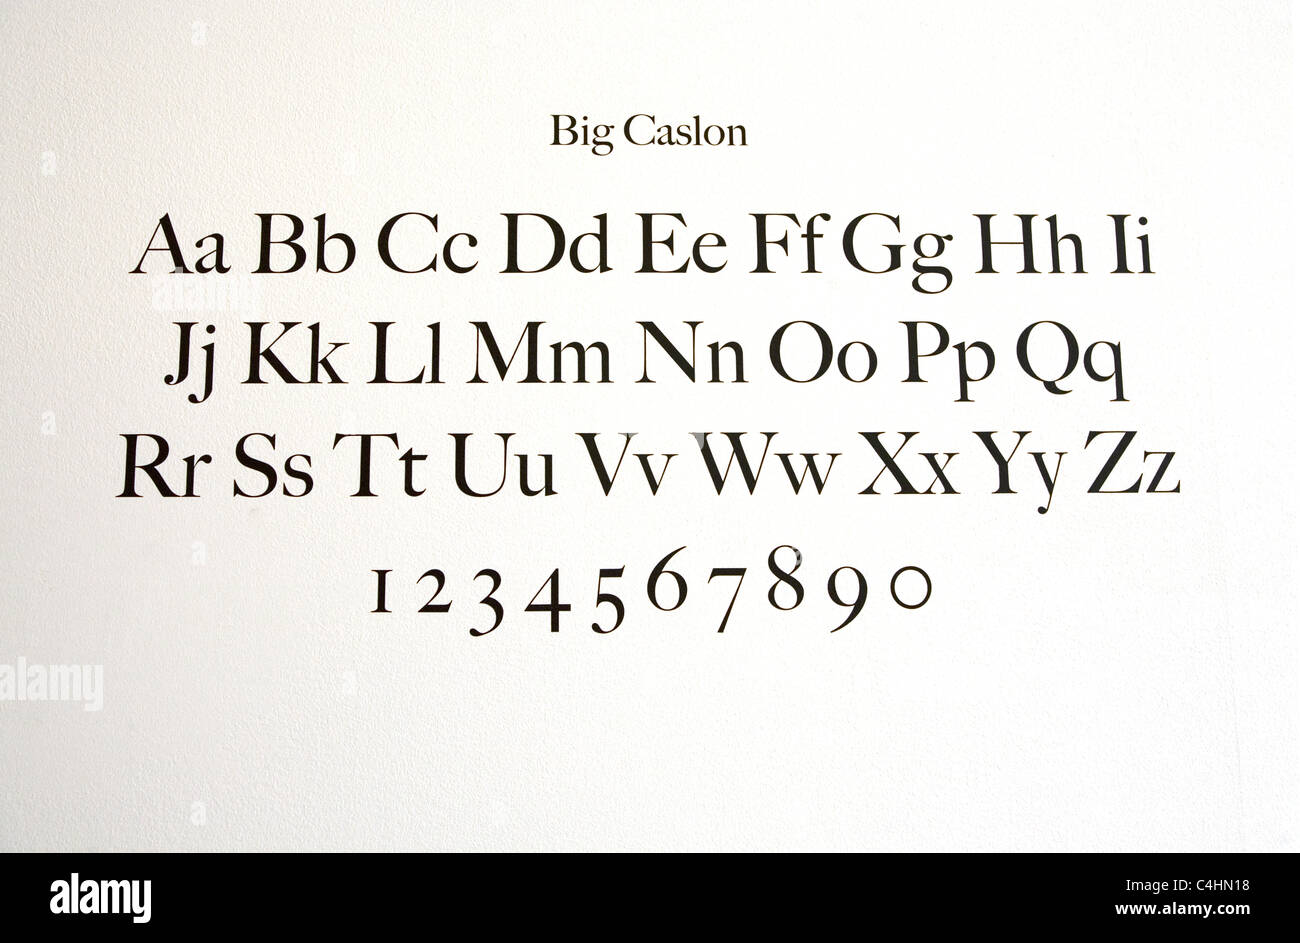 Big Caslon Type Face on display at MOMA, The Museum Of Modern Art in NYC. - Stock Image